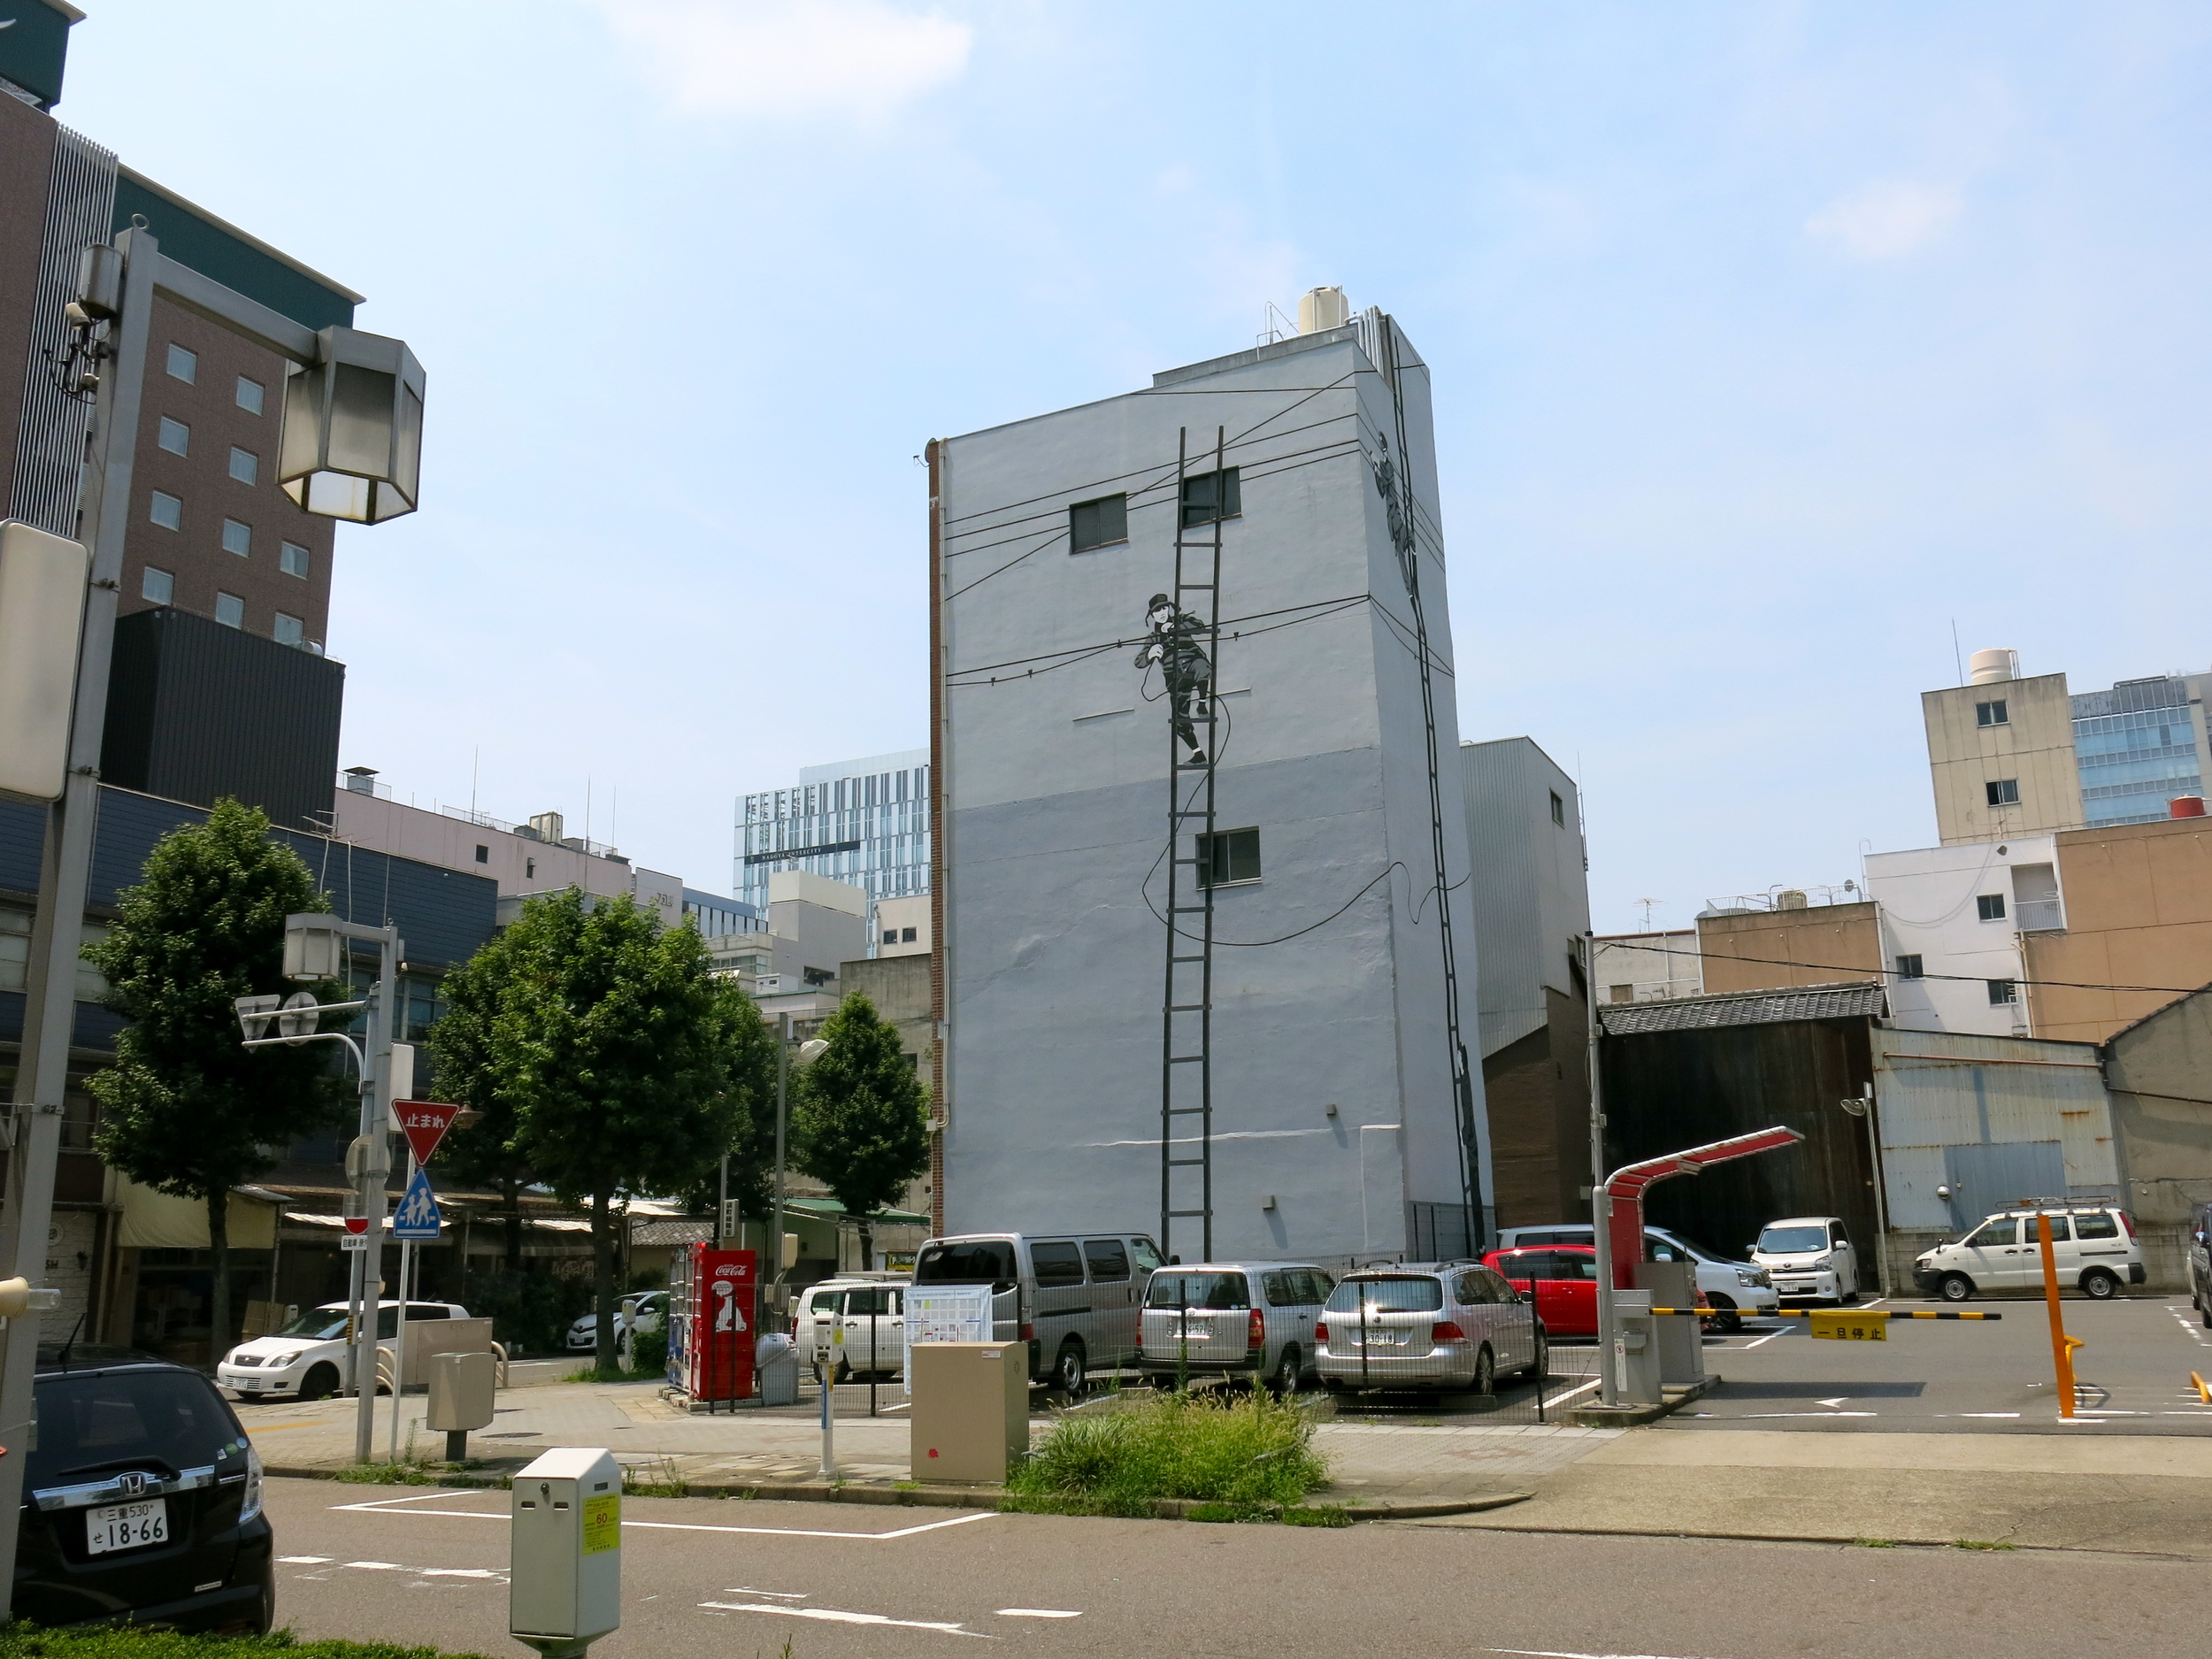 Wall painting on the former Tamaya building by Portuguese artist Rigo 23 who was inspired by a 1952 photograph of Nagoya workers perched on ladders. Choja-machi site.